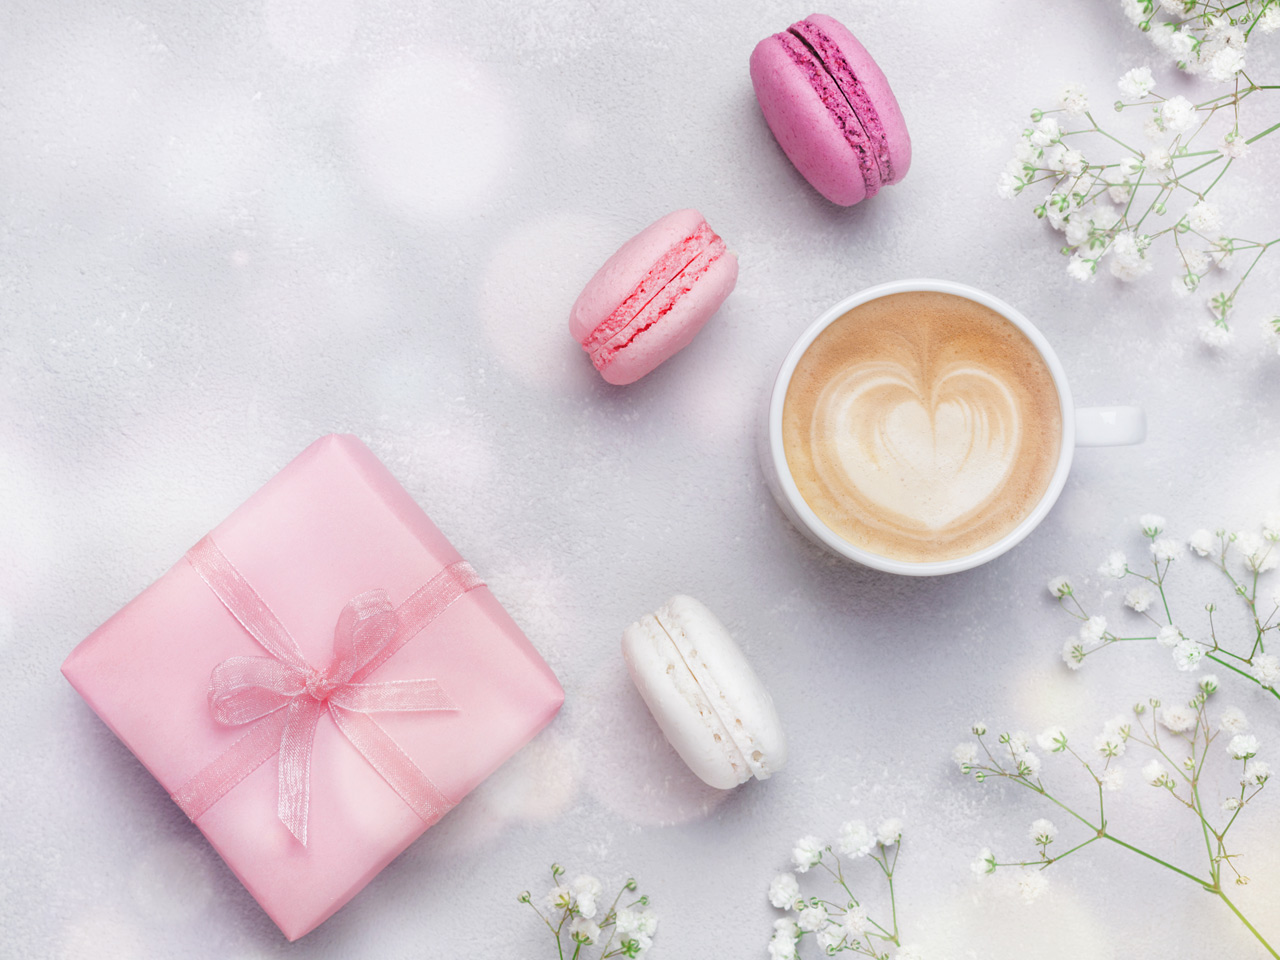 Enchant your loved ones with homemade macarons